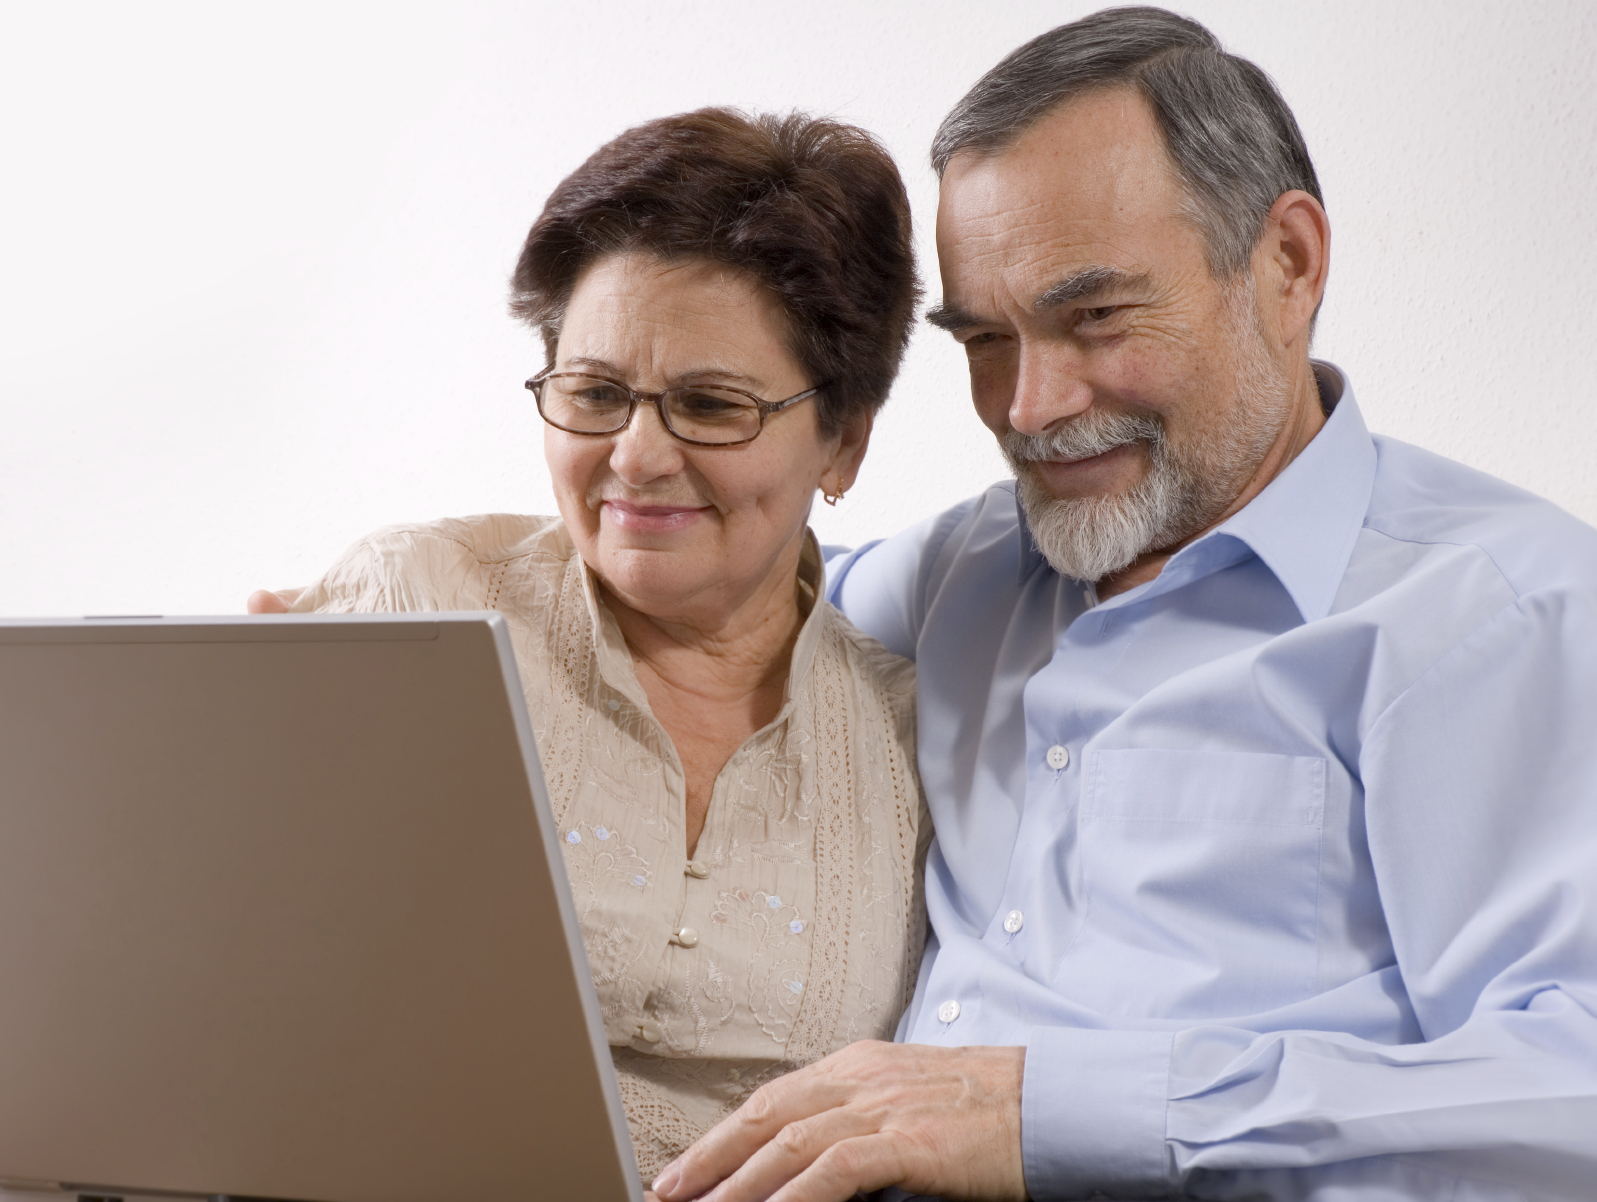 Mature Dating Online Services No Fees At All